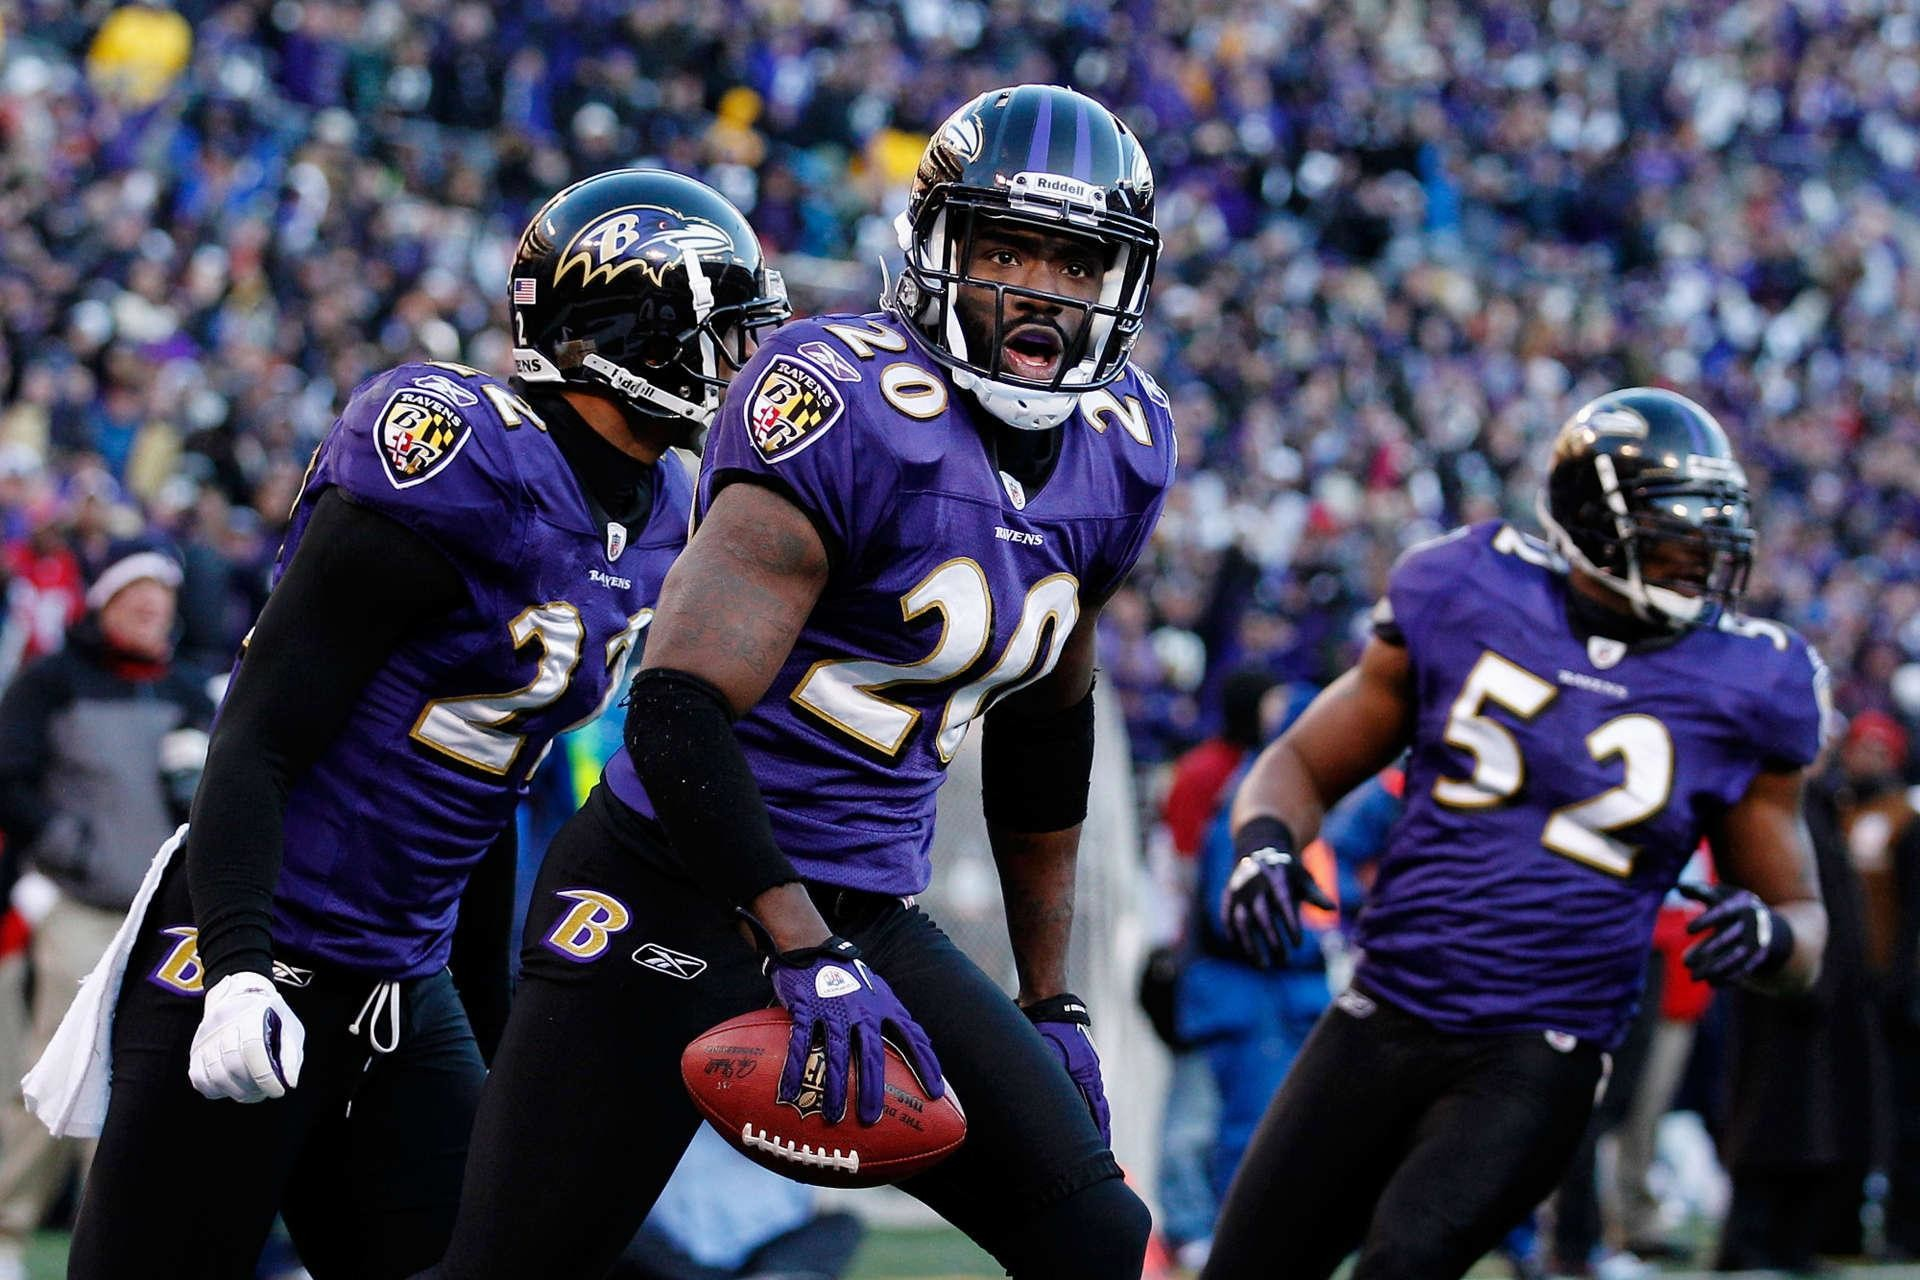 wallpaper.wiki-HD-Ravens-Pictures-Download-PIC-WPE001483